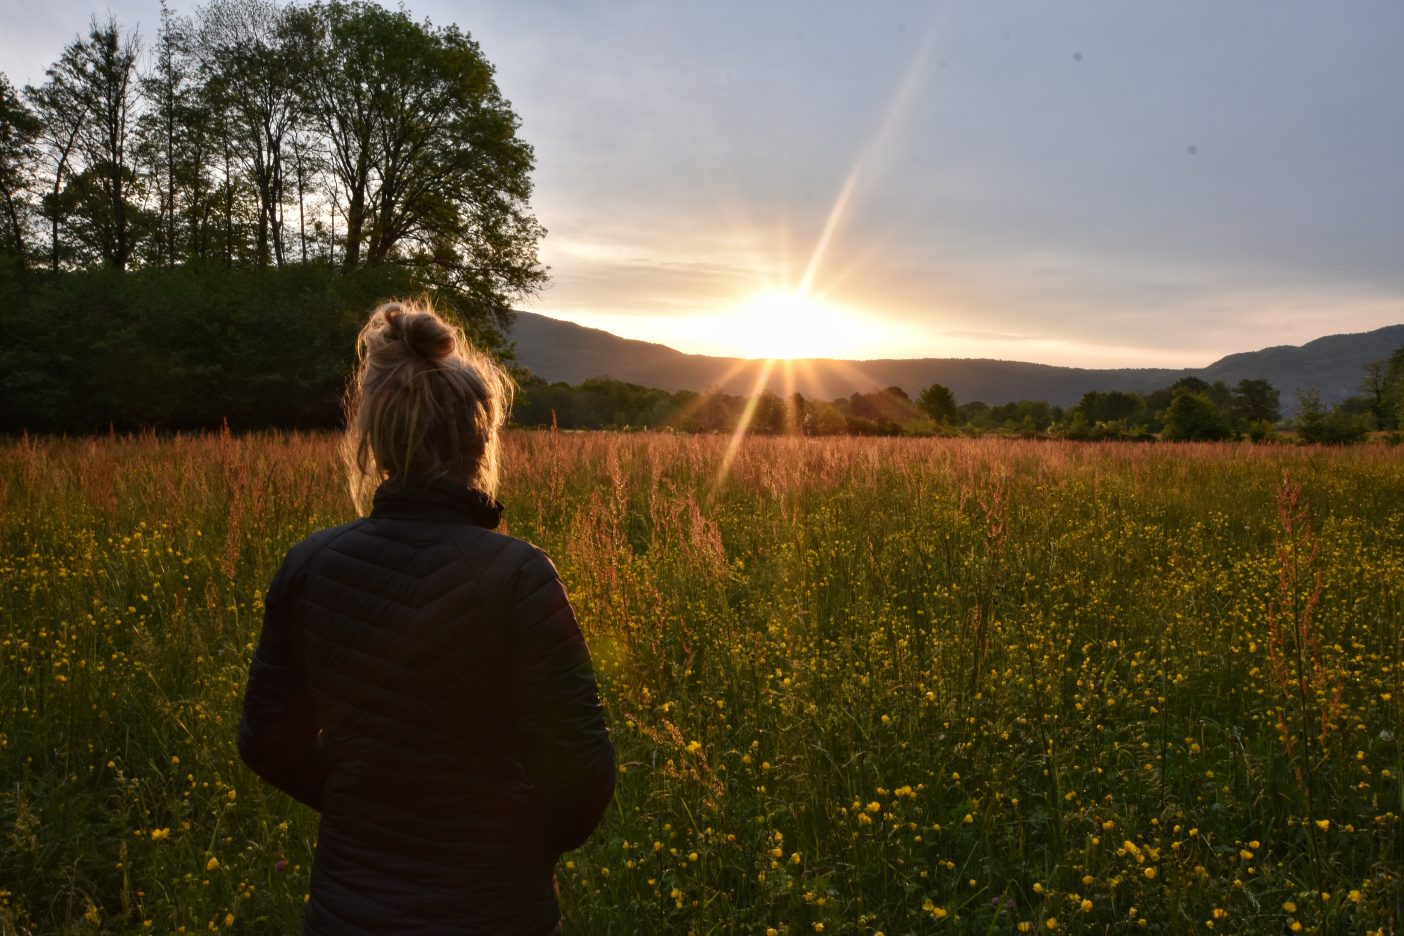 Girl watching sunrise in buttercup field